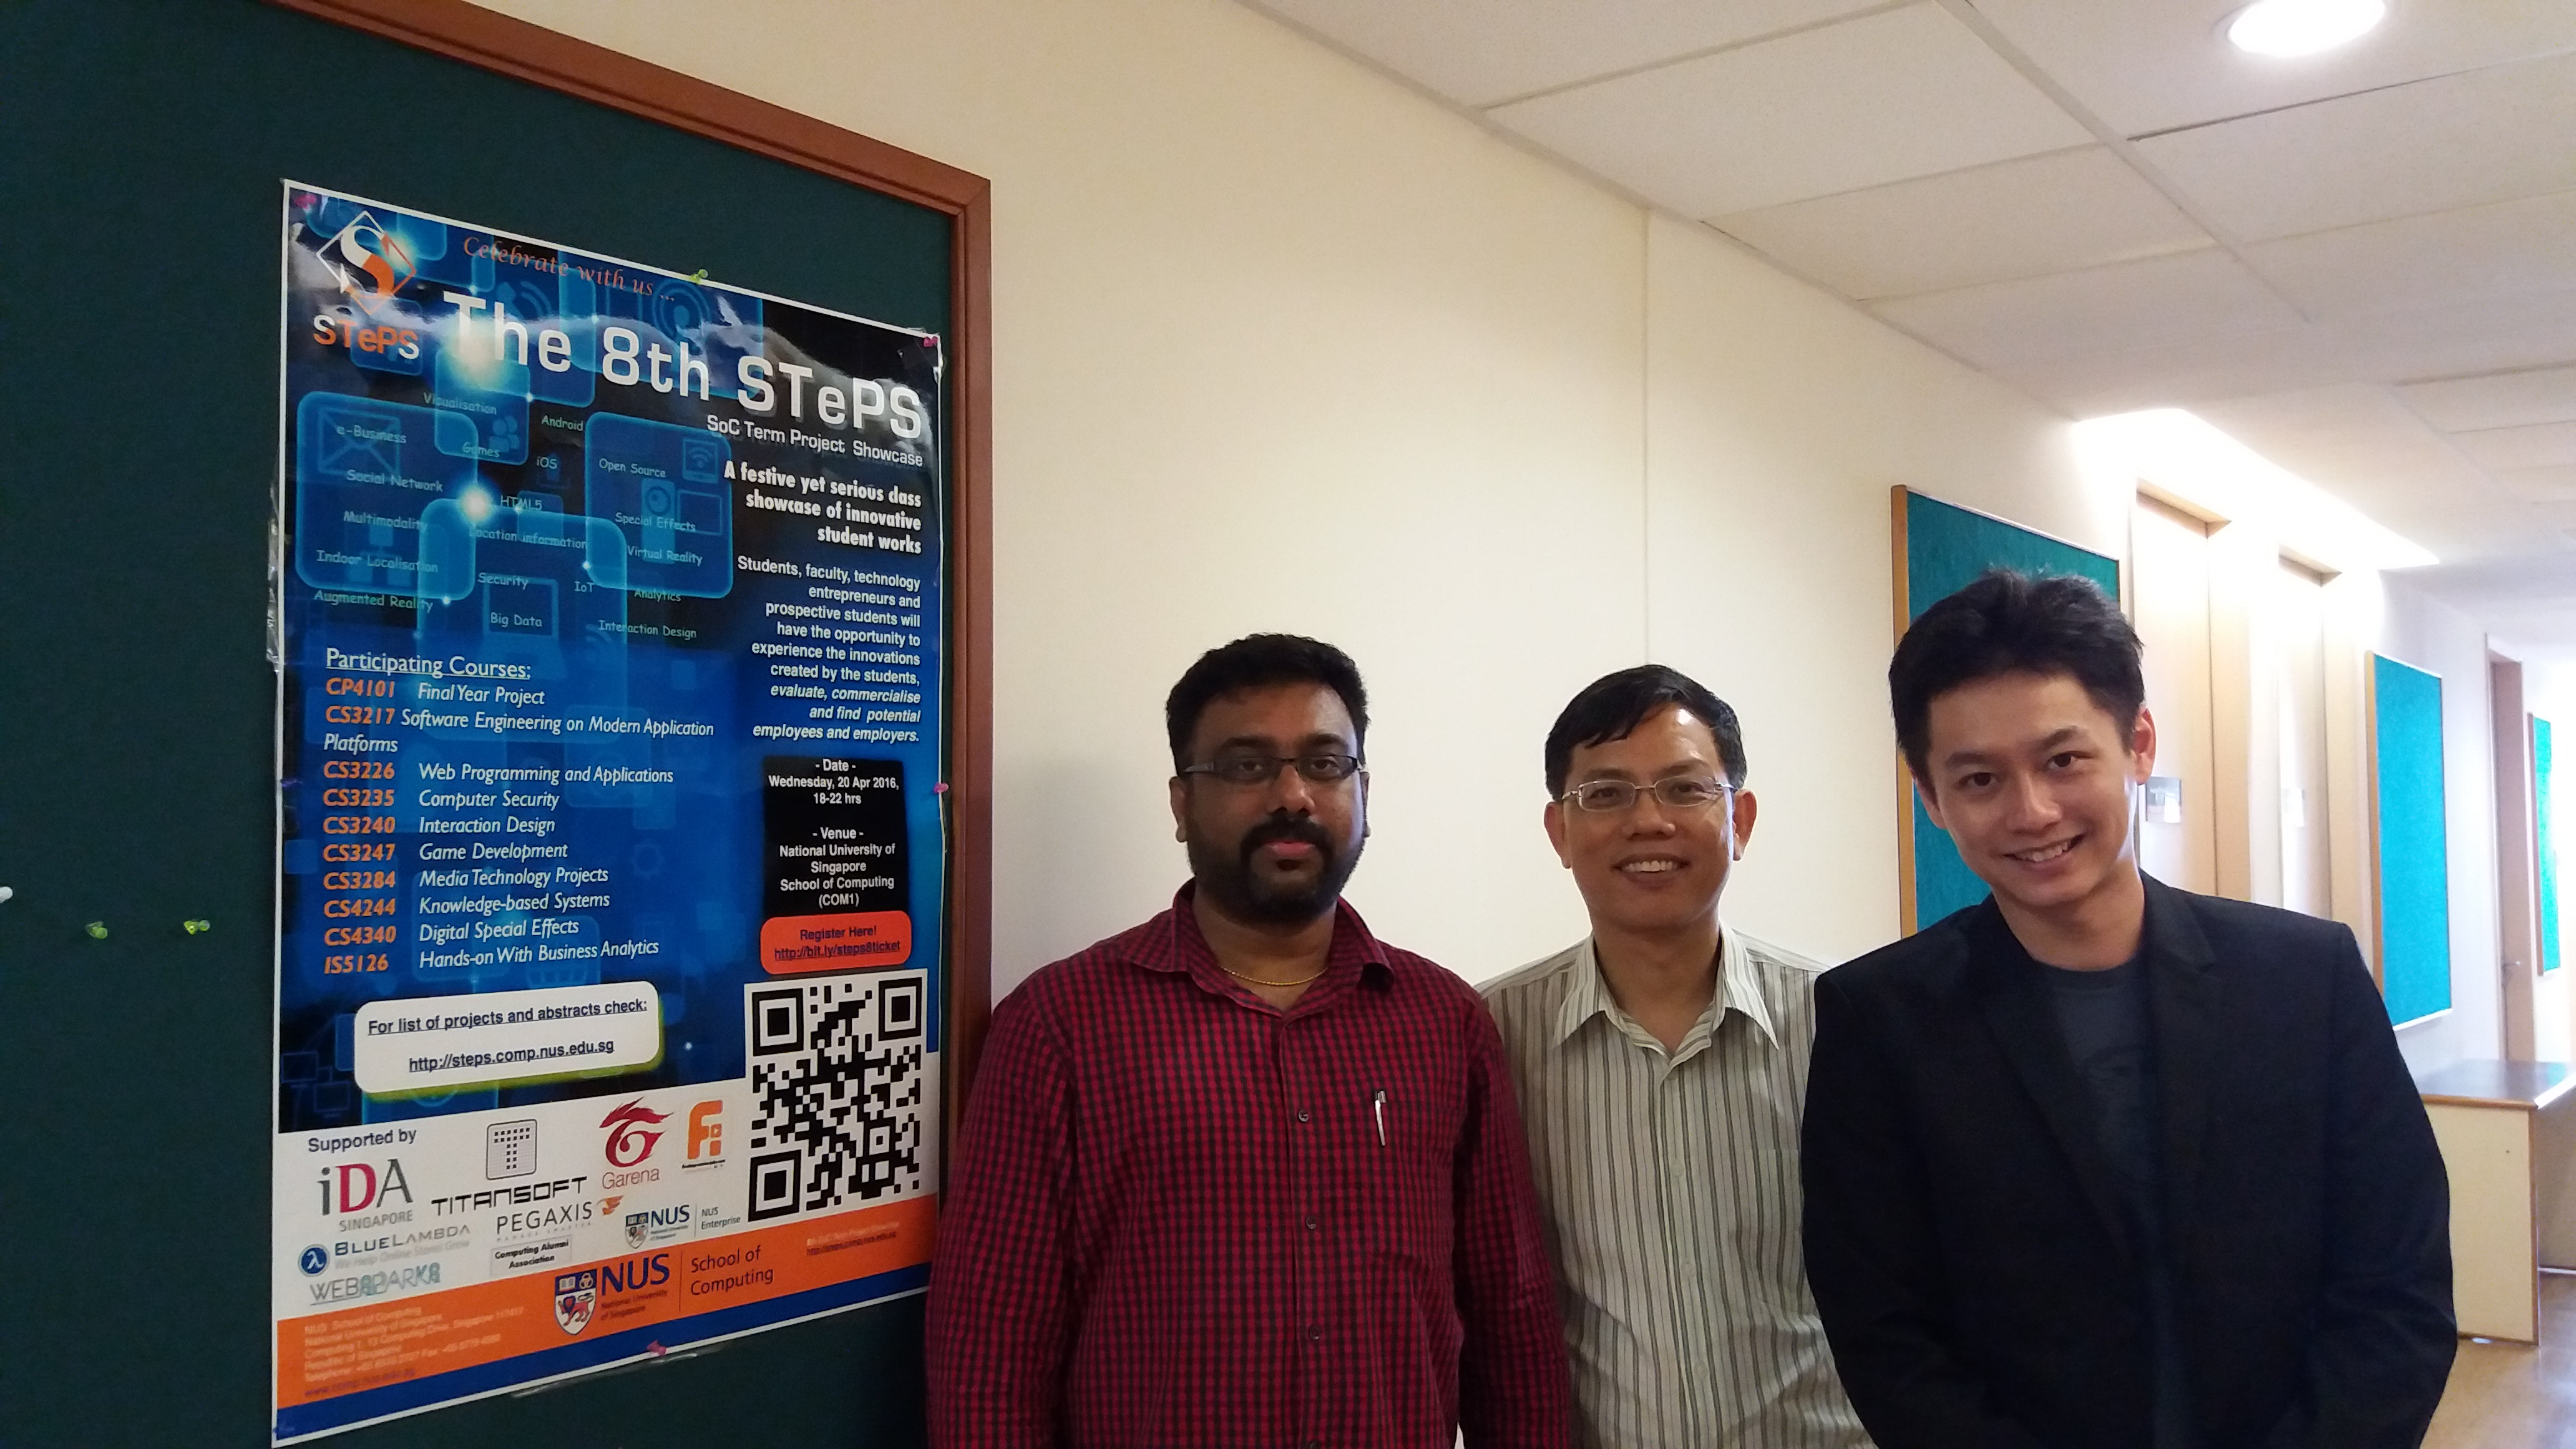 8.-Meeting-with-Anand-STePC-in-NUS-SoC-and-Project-based-learning-in-HKUCS